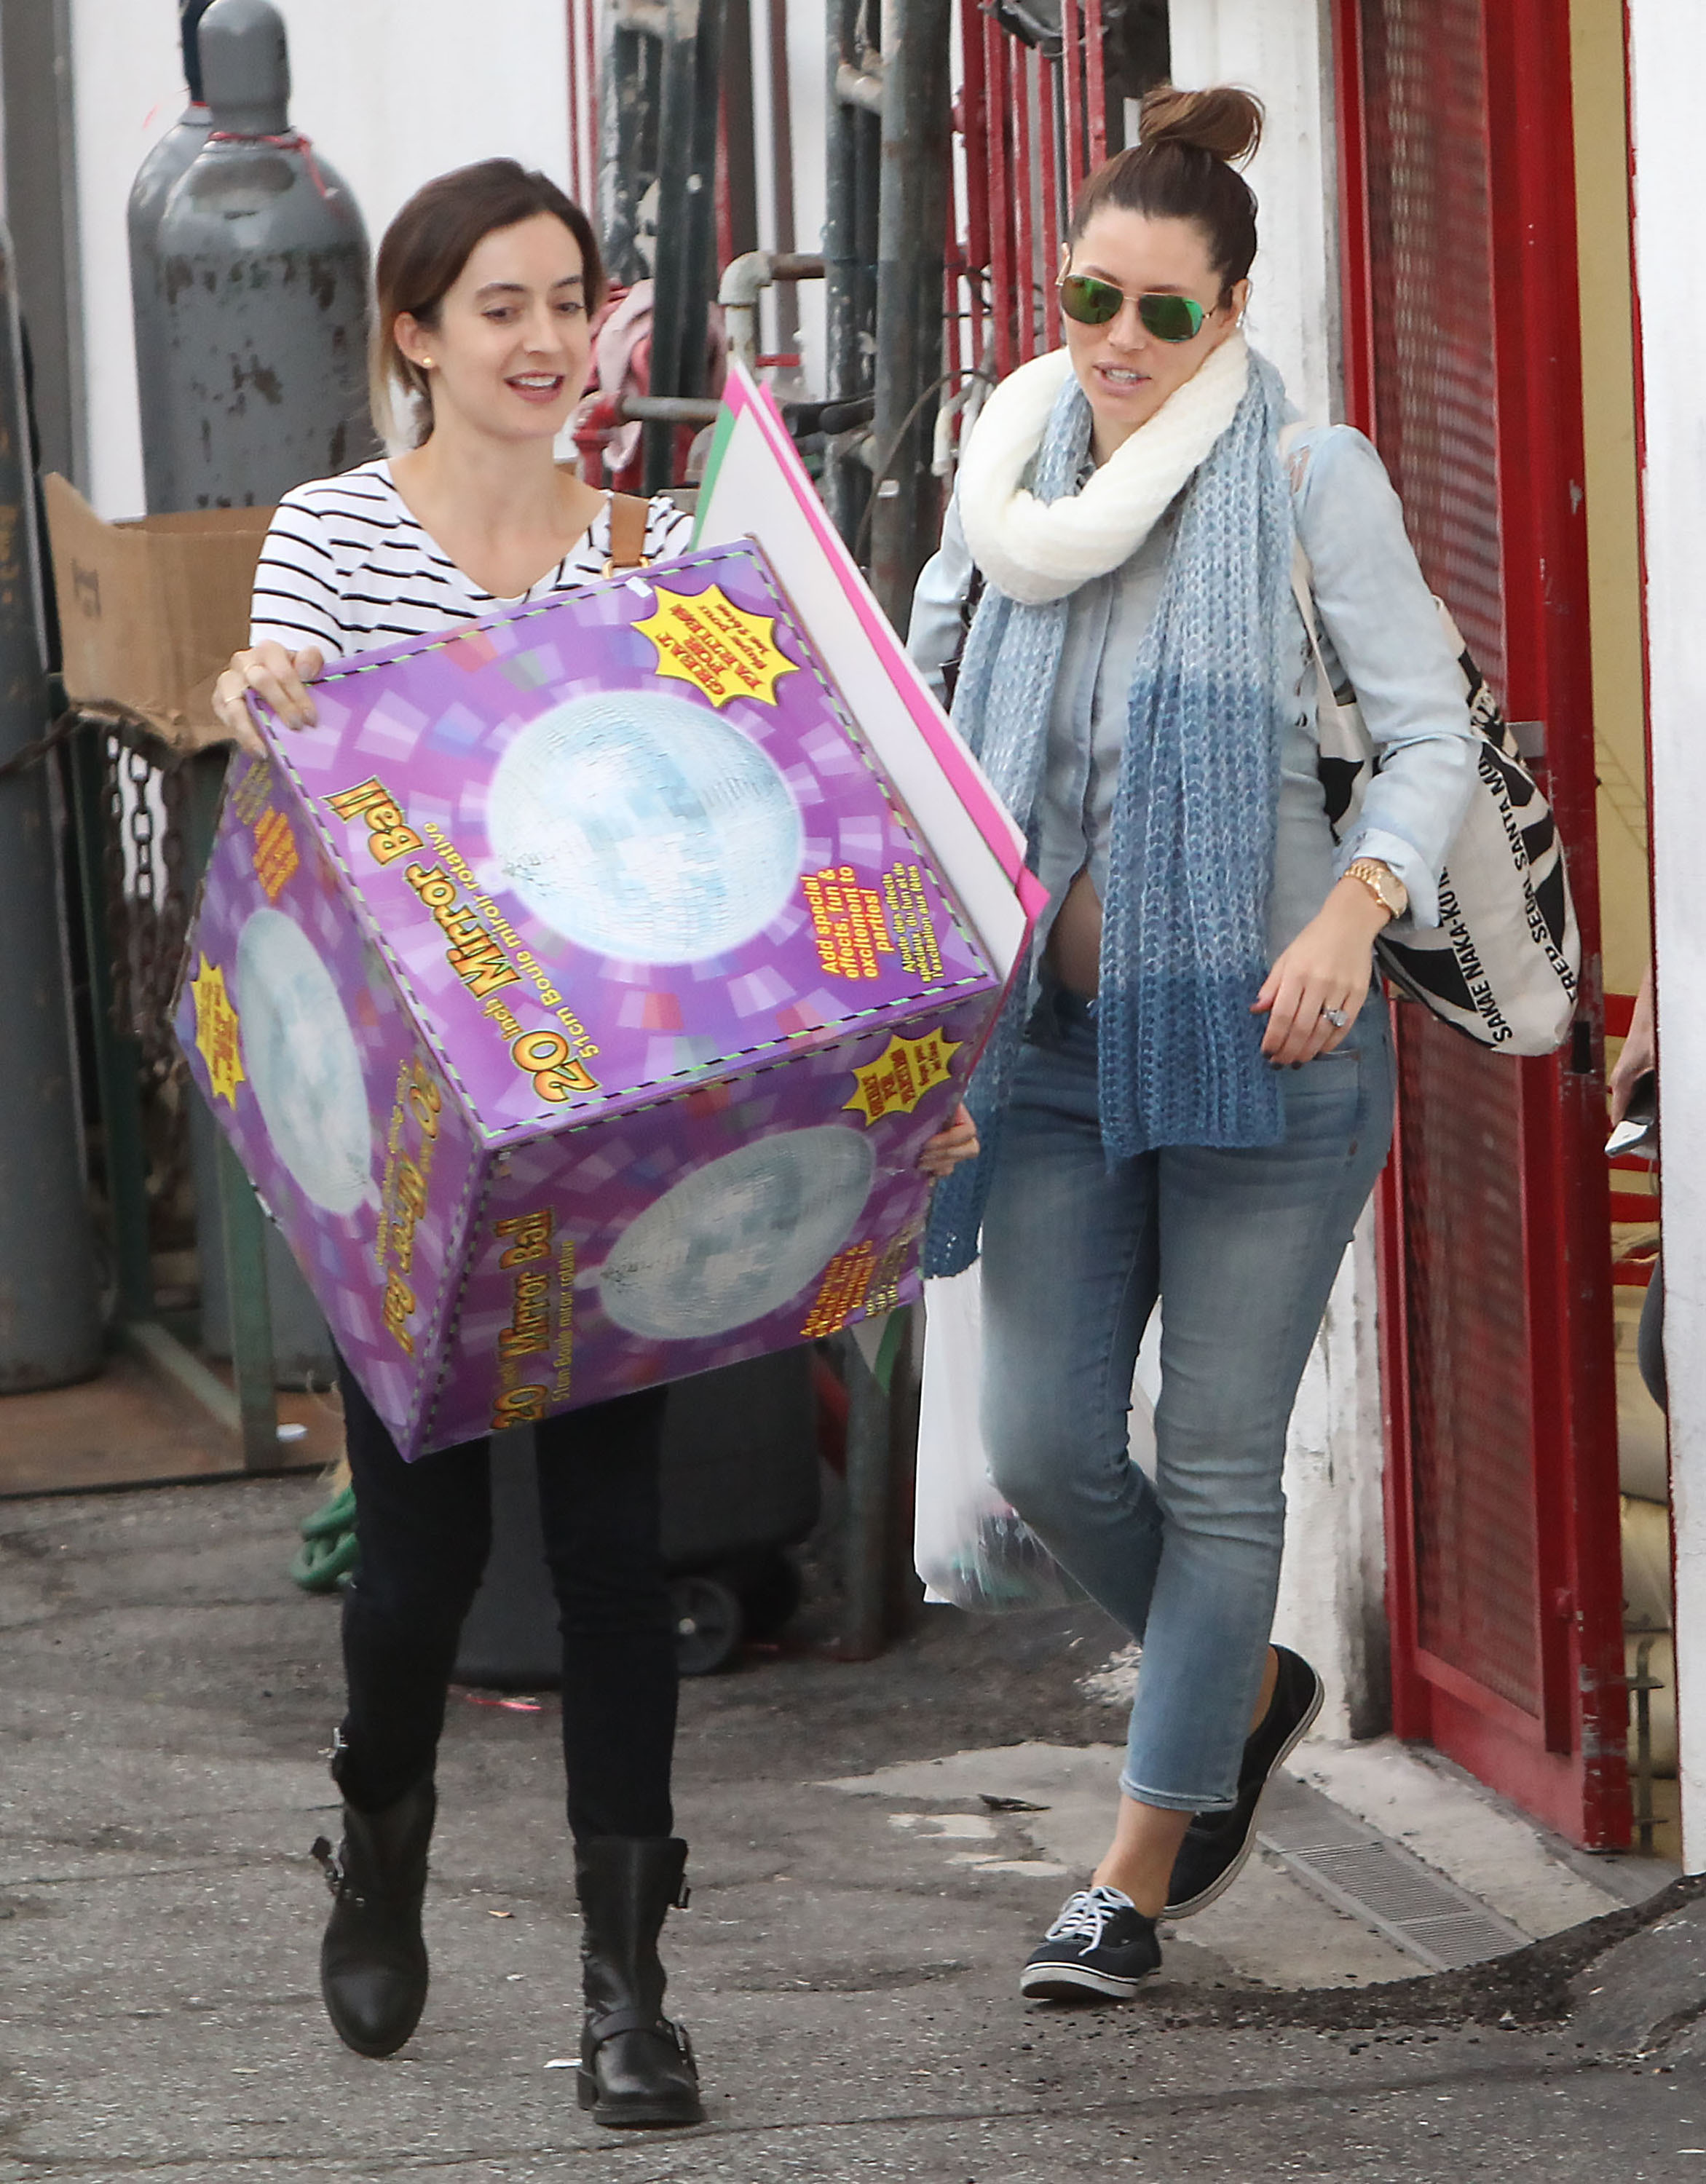 Us Weekly confirms that Jessica Biel is pregnant